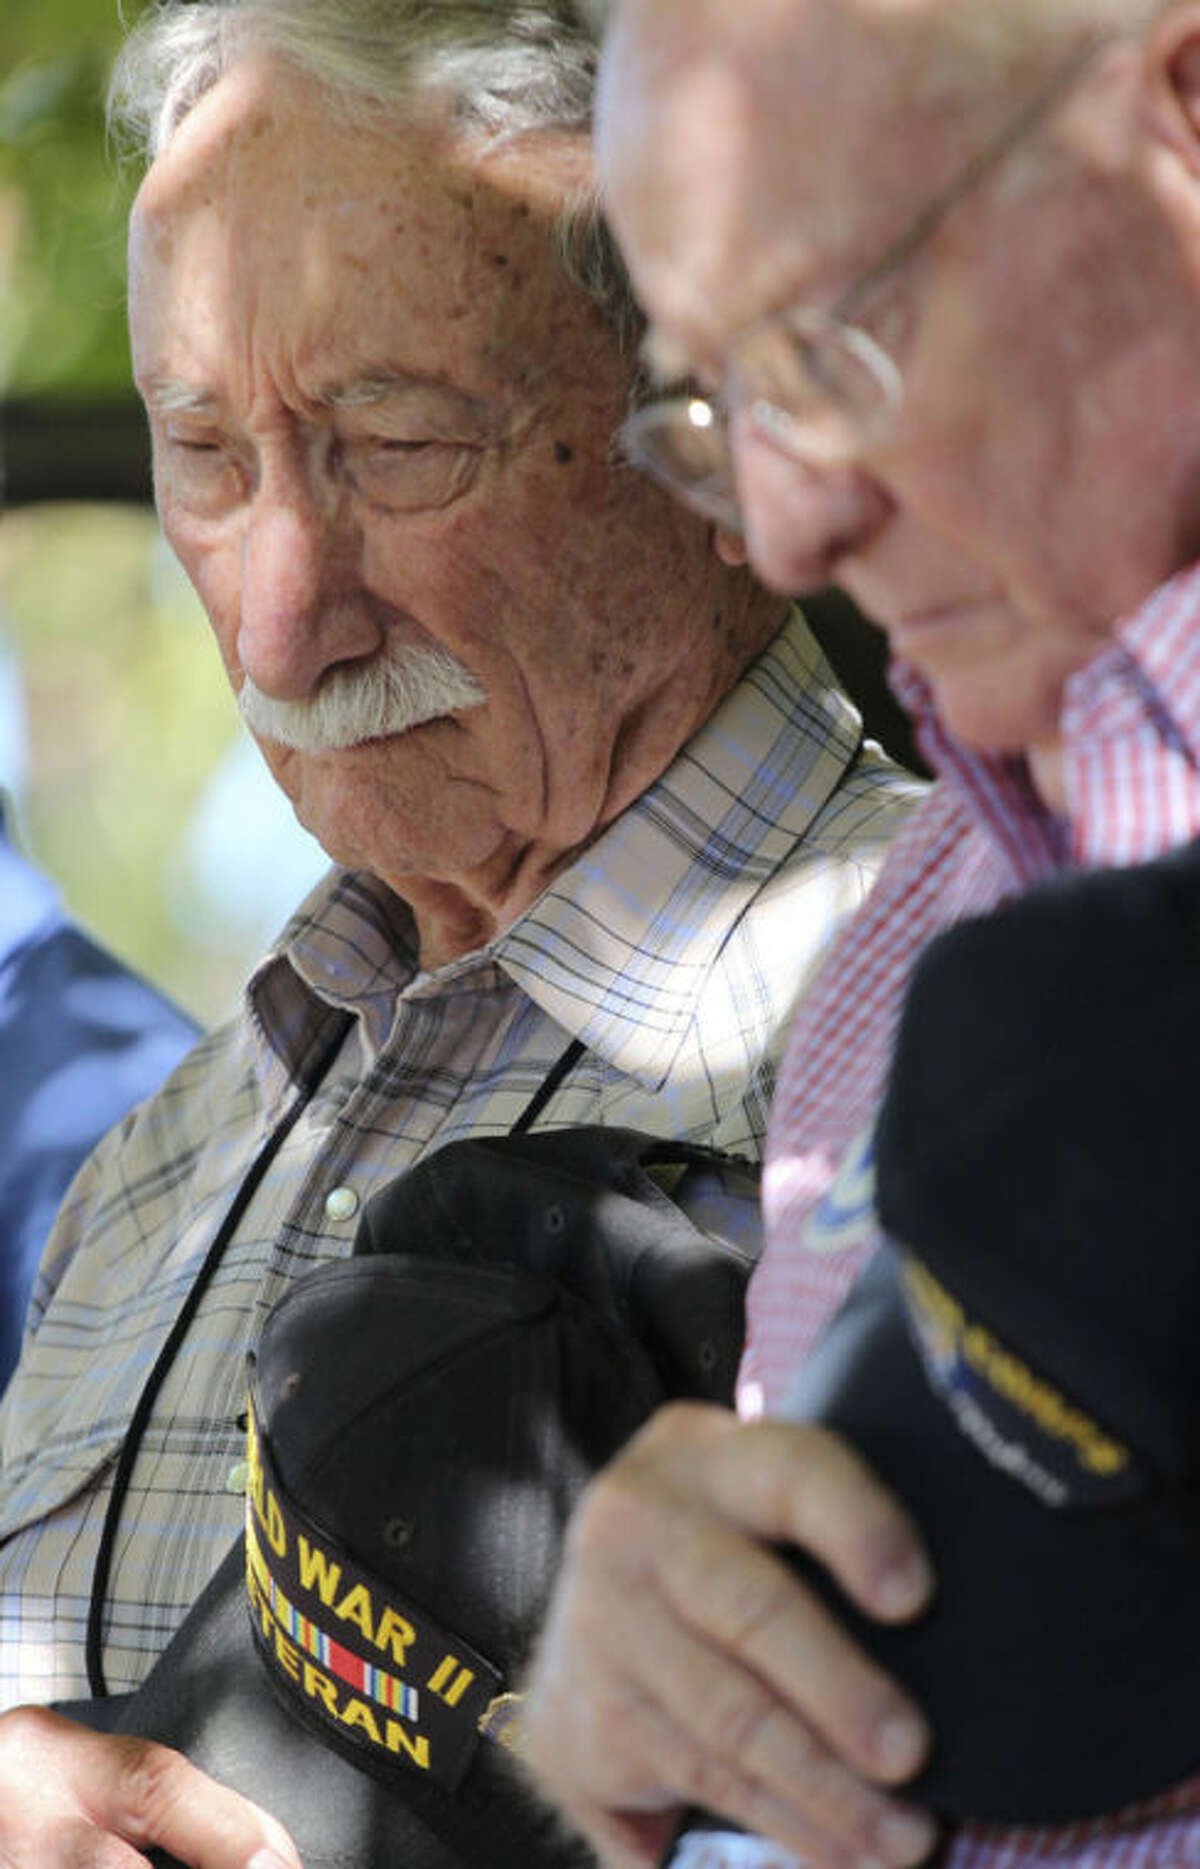 In this Sept. 27, 2013 photo, George Williams, left, and Robert Crouse, bow their heads as they take part in a memorial ceremony during a reunion outside the U.S. Air Force Museum at Wright Patterson Air Force base in Dayton, Ohio. As many as 11,000 people, including Williams and Crouse, served in the 57th Bomb Wing that flew missions over German-held Europe from North Africa and the island of Corsica during most of the war. Hundreds survive, according to wing historians and reunion organizers. Only nine veterans made it to this fall?'s event. (AP Photo/Tom Uhlman)